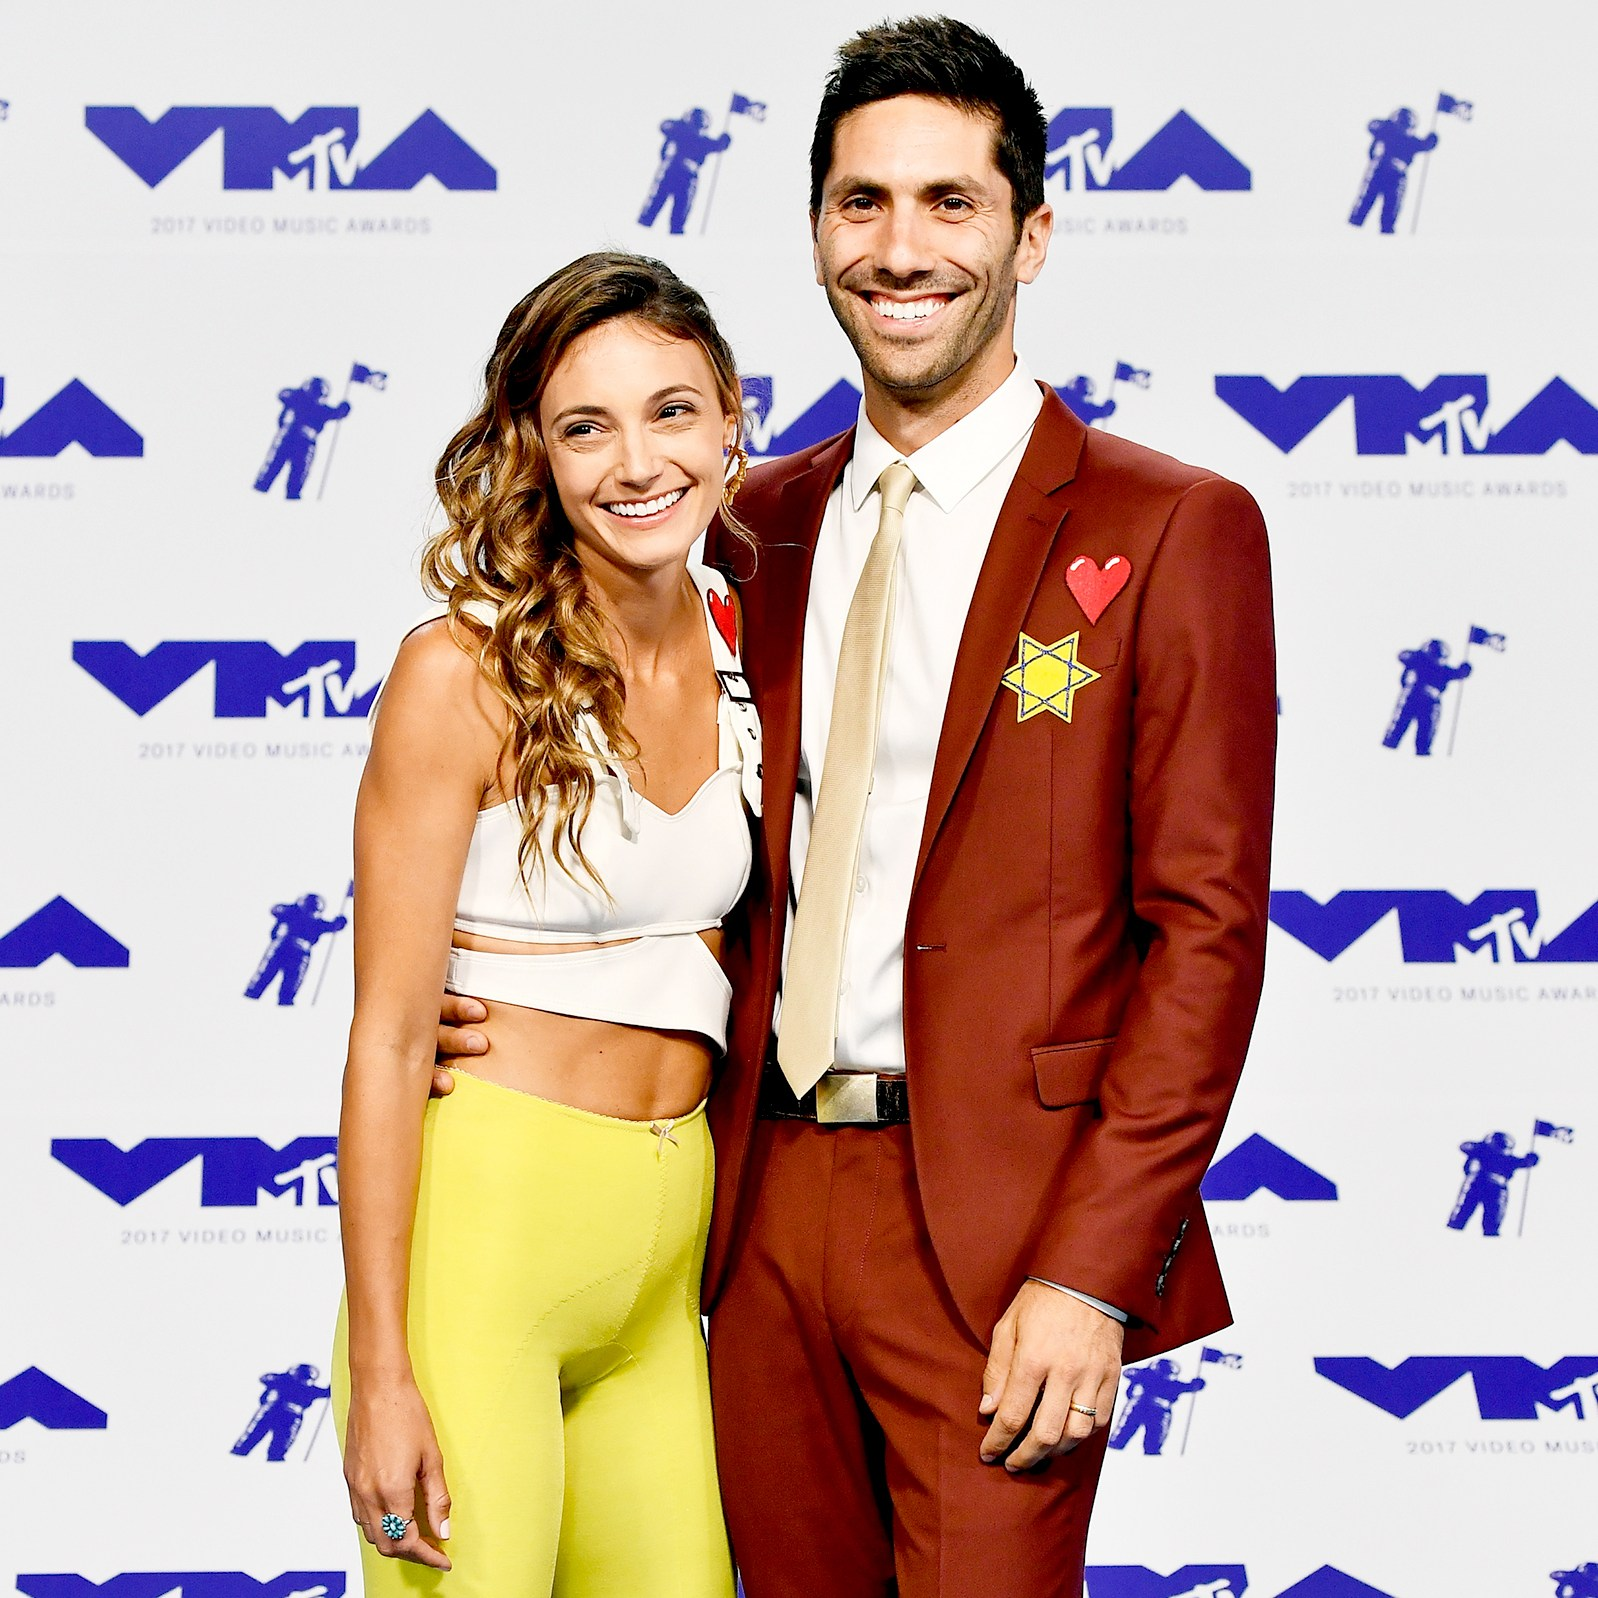 Laura Perlongo and Nev Schulman attend the 2017 MTV Video Music Awards at The Forum on August 27, 2017 in Inglewood, California.